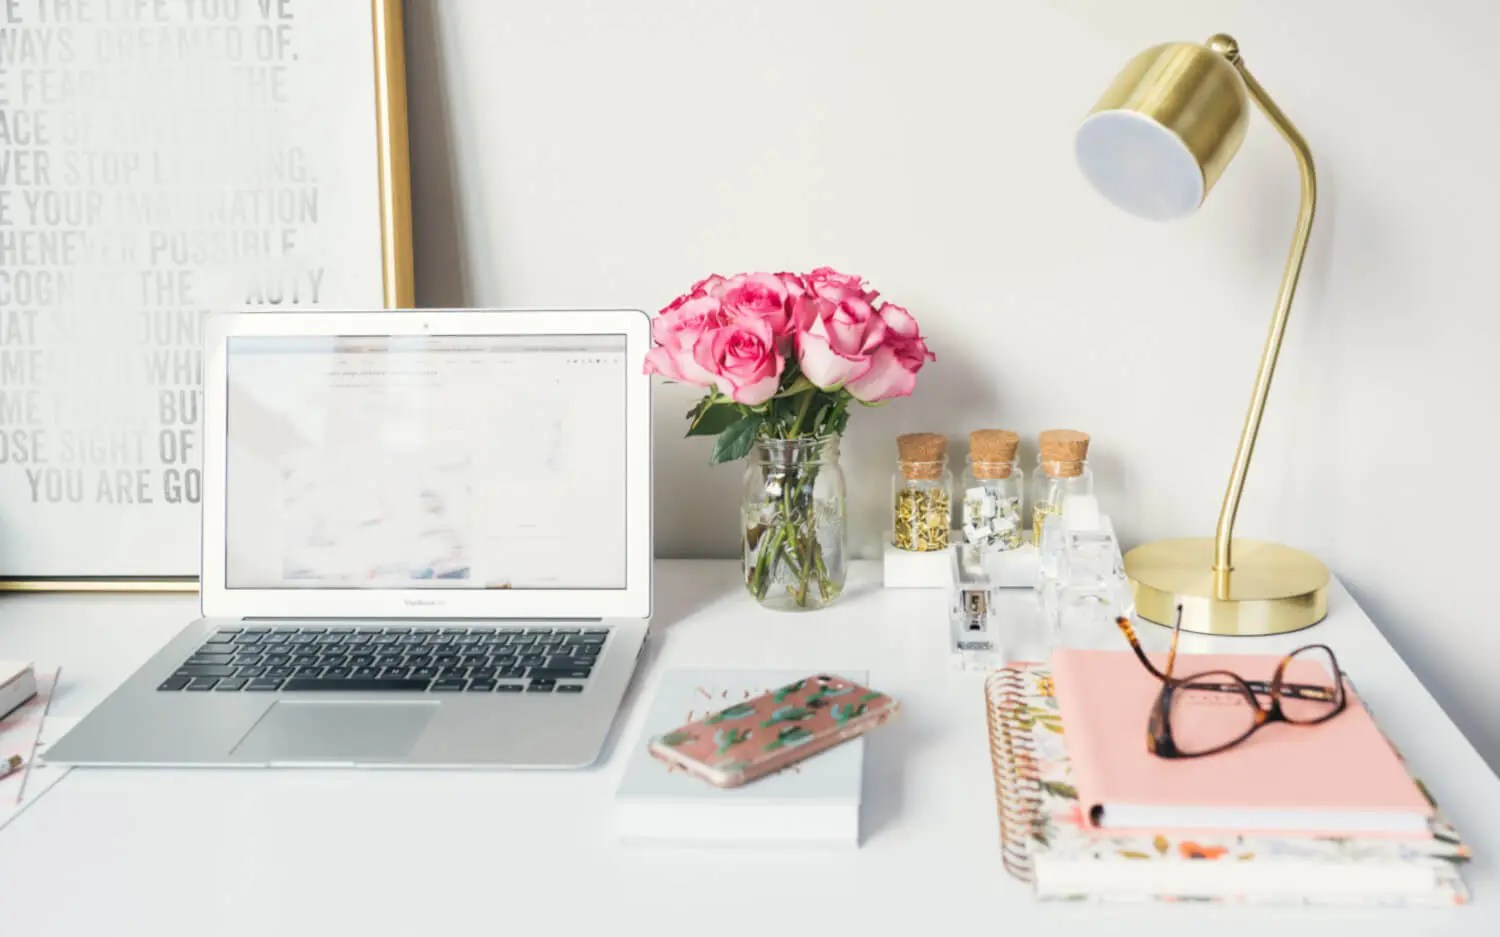 4 REASONS TO HAVE FLOWERS IN THE OFFICE